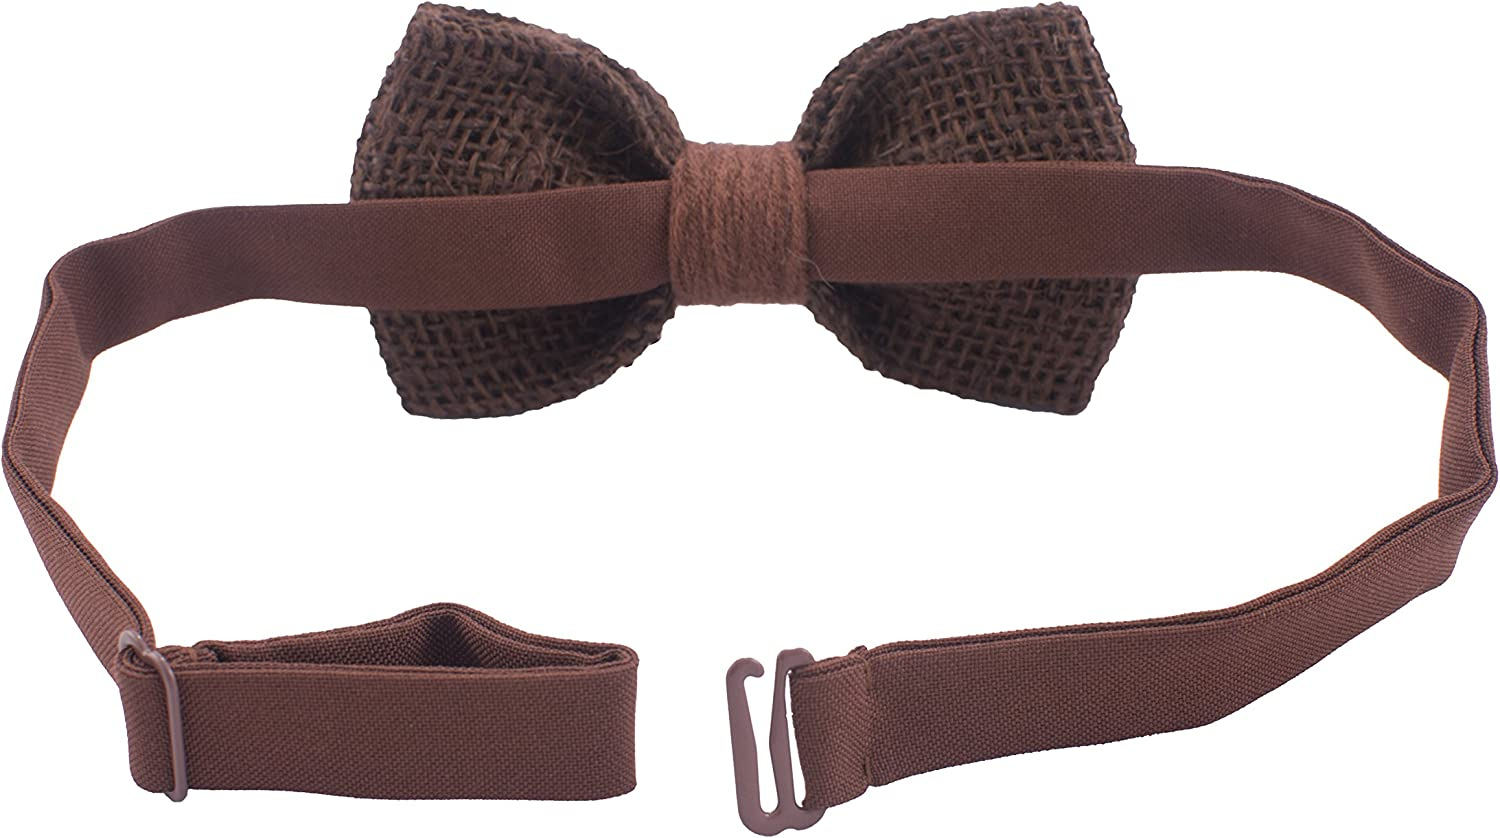 by Bow Tie House Rustic Pre-Tied Bow Tie in 100/% Burlap Hessian for Adults /& Children